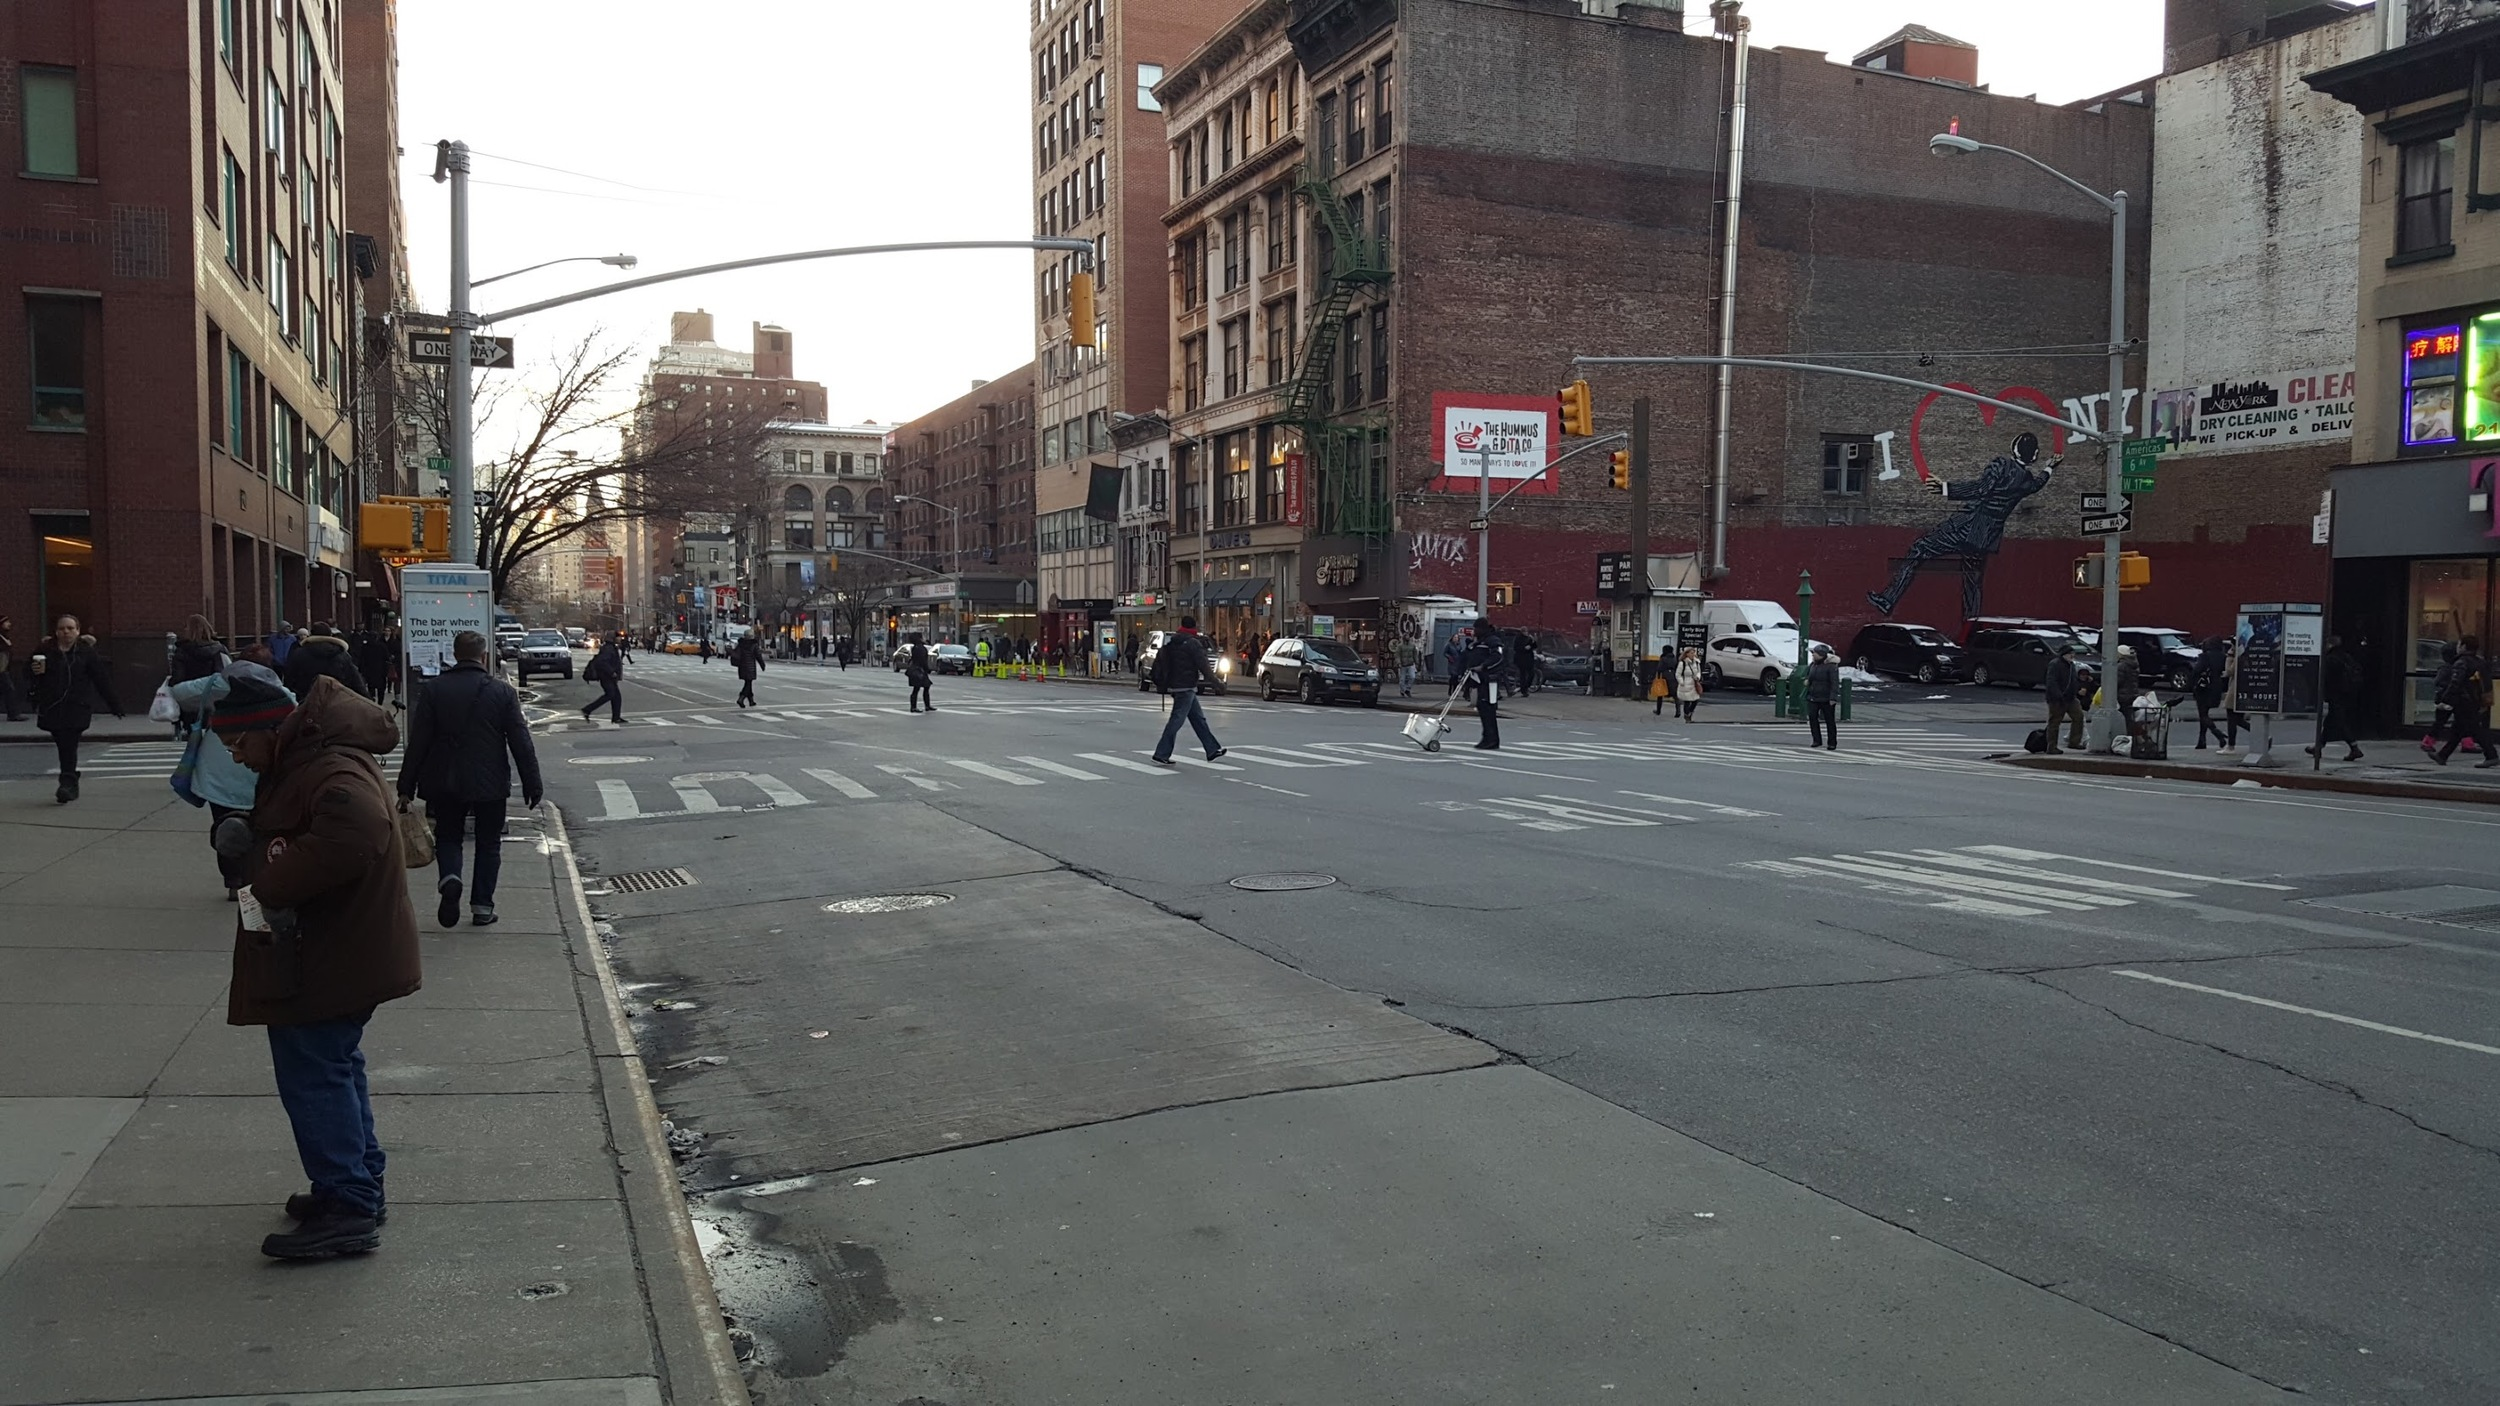 Everyone looking down the street in Manhattan as they cross. Perhaps they are not fully trusting the signal saying that nothing is going to hit them?